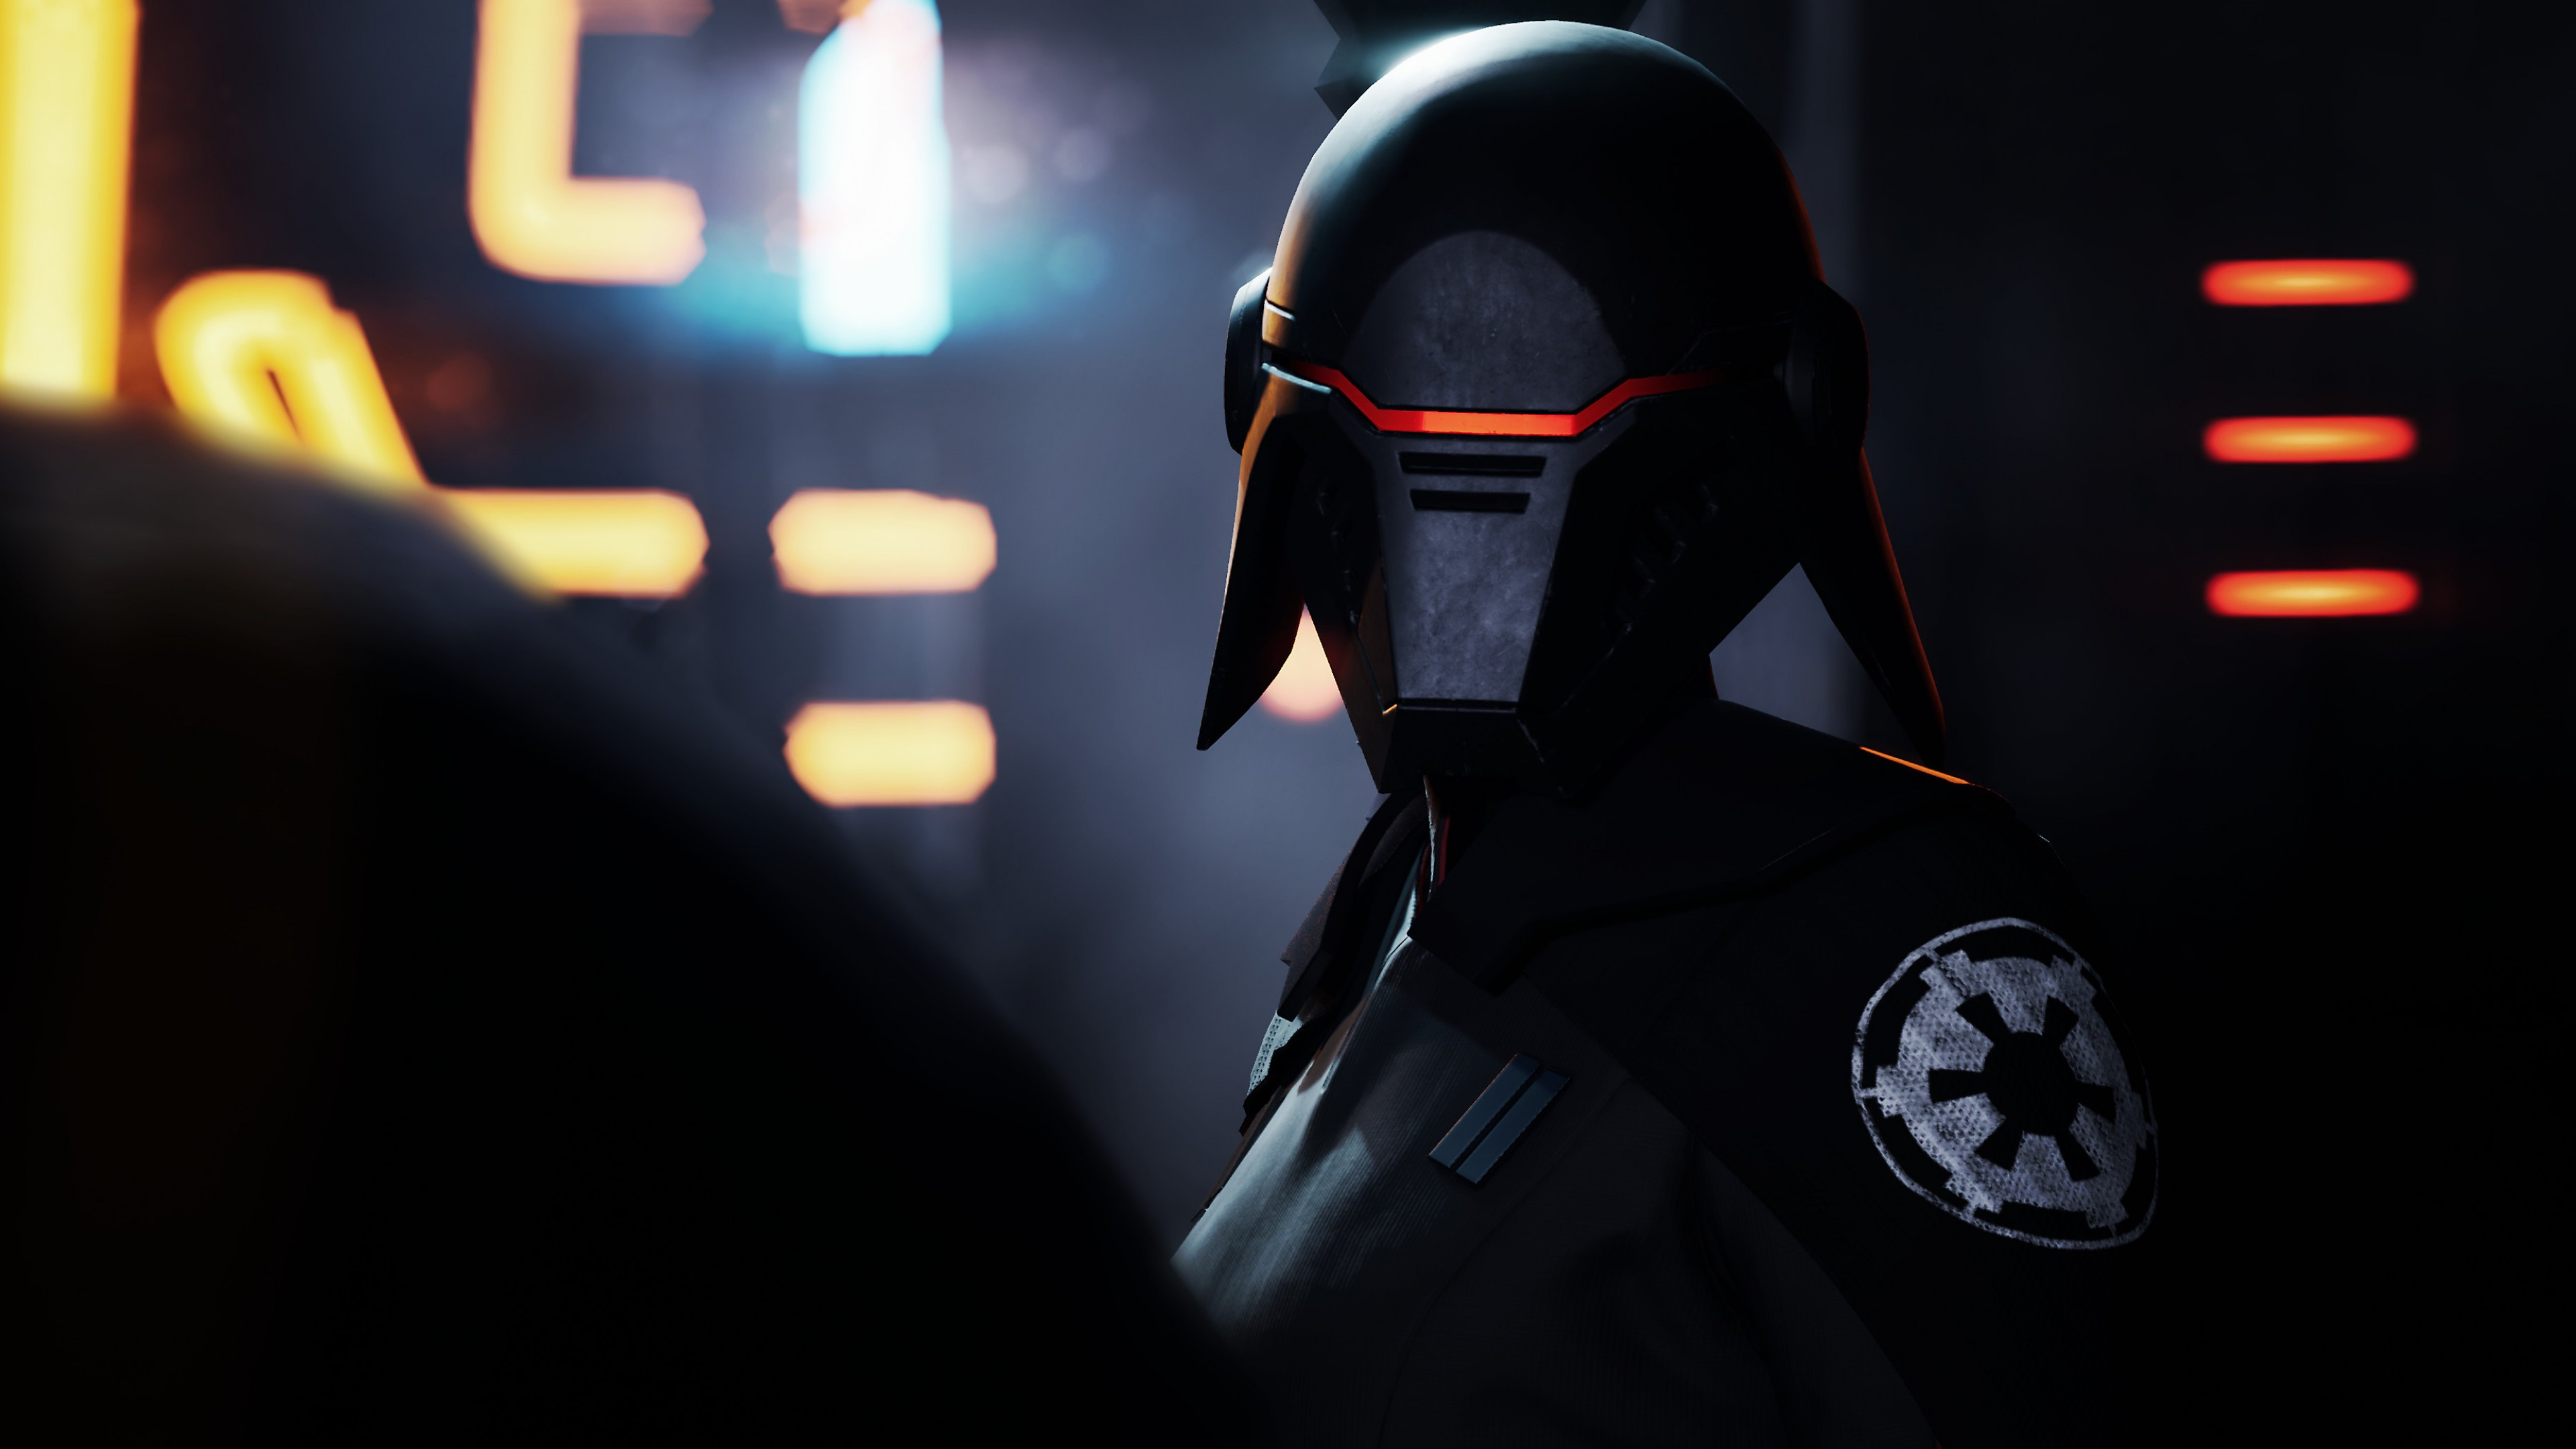 Star Wars Jedi: Fallen Order soldier wallpaper 3840x2160